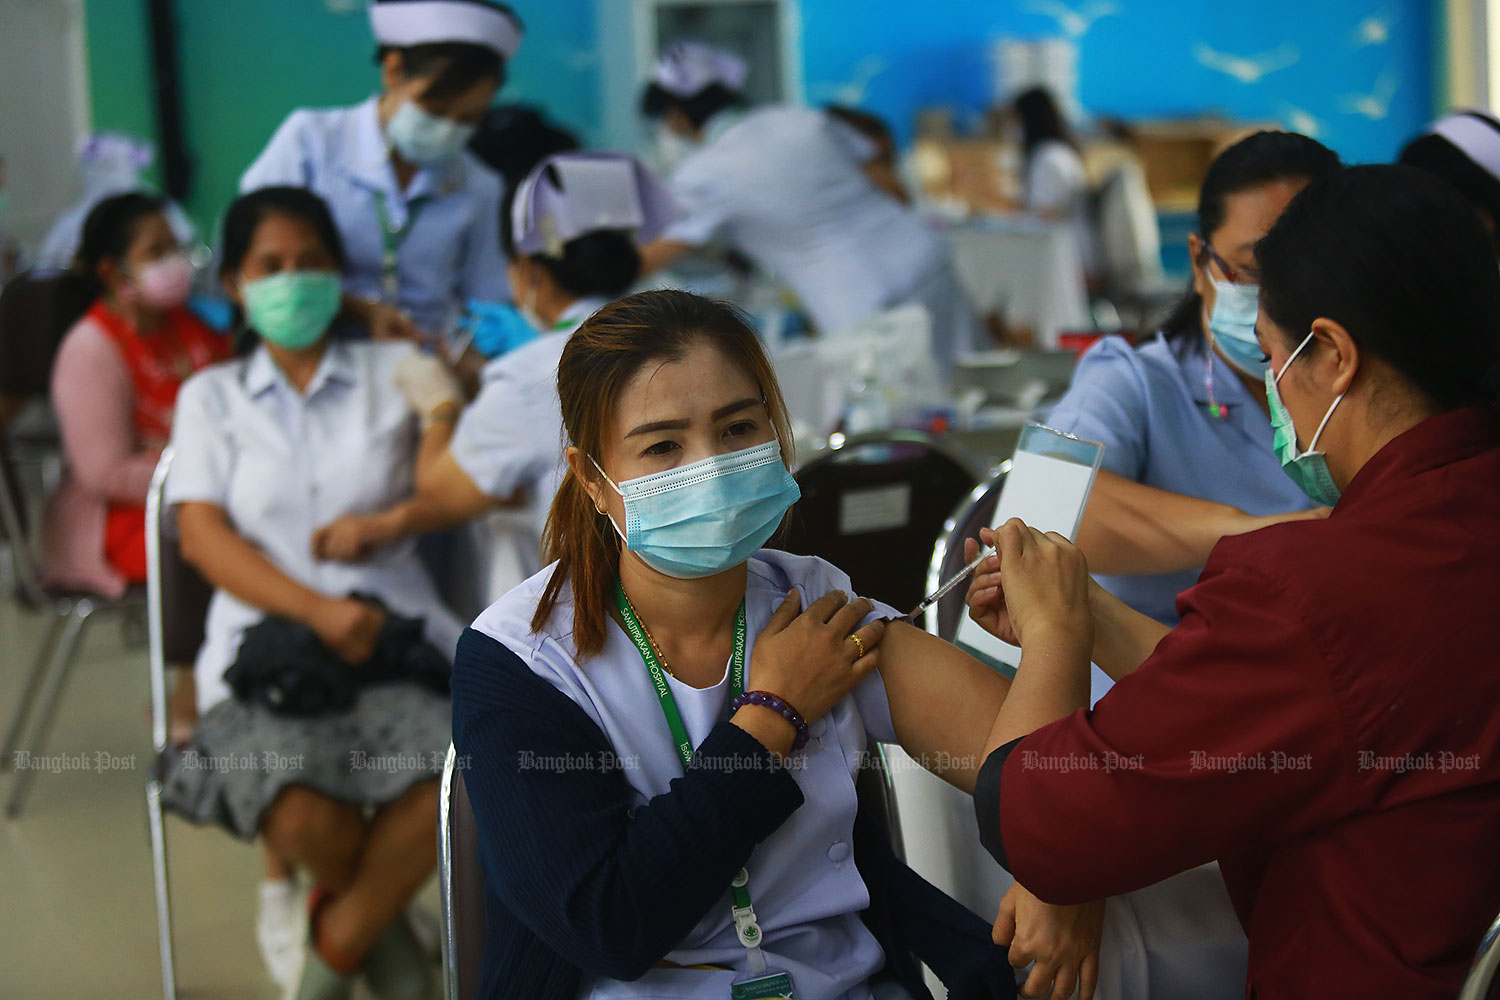 Shot of relief: Medical staff at Samut Prakan Hospital in Muang district yesterday receive their second shot of the Covid-19 vaccine. More than 800 medical staff, state officials and media personnel who registered with the hospital received the second doses at the hospital. (Photo by Somchai Poomlard)